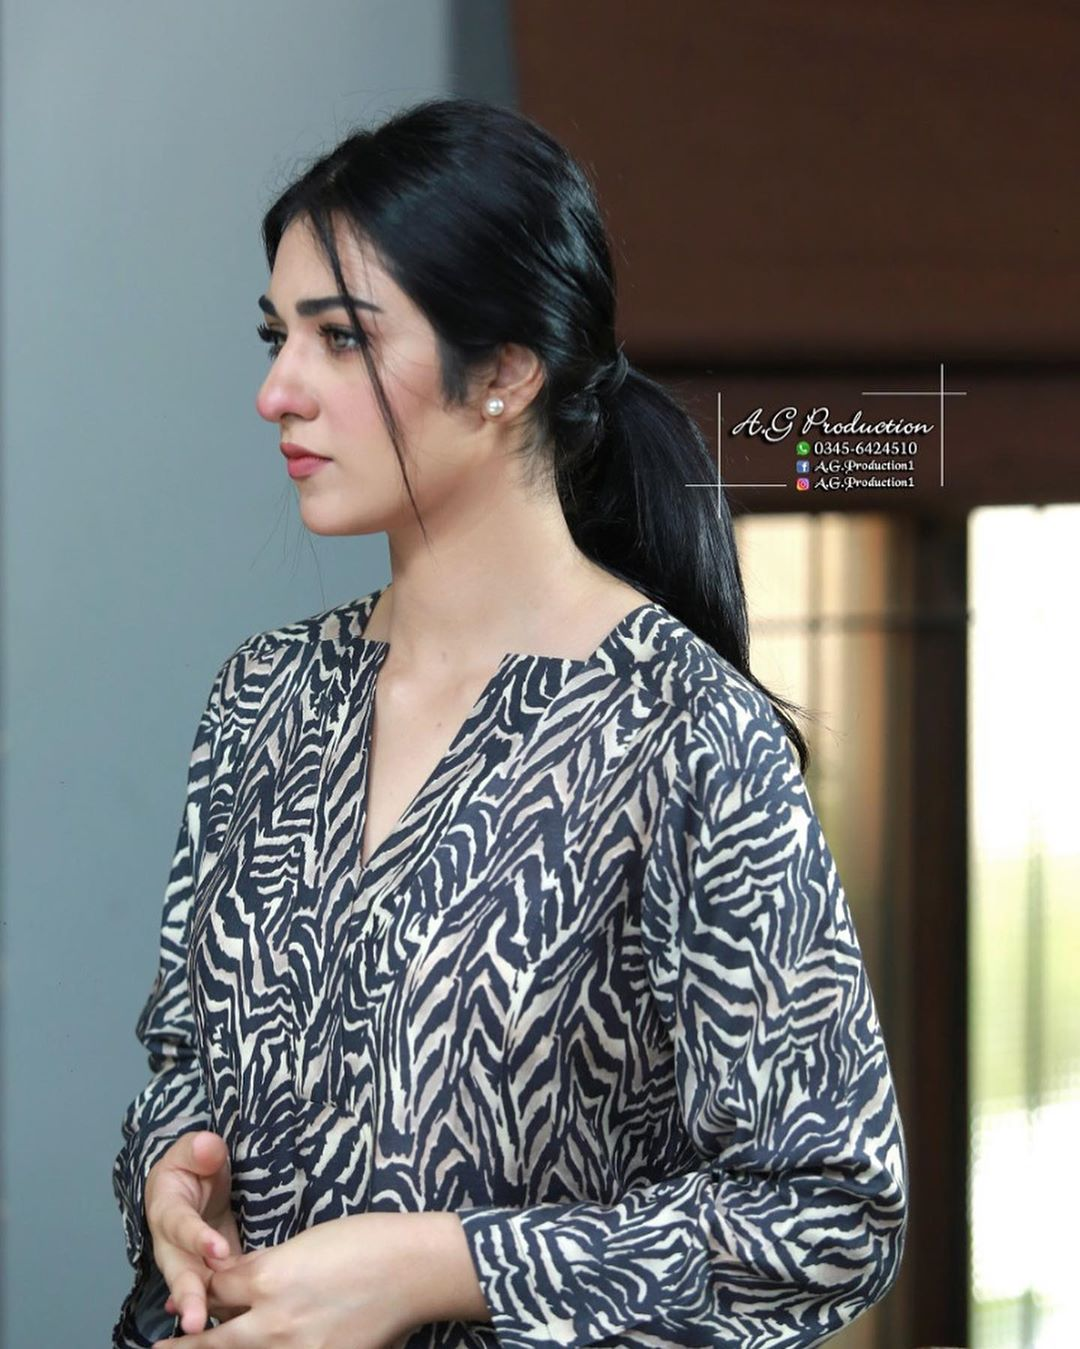 Sarah Khan Beautiful Collection of Pictures from Instagram